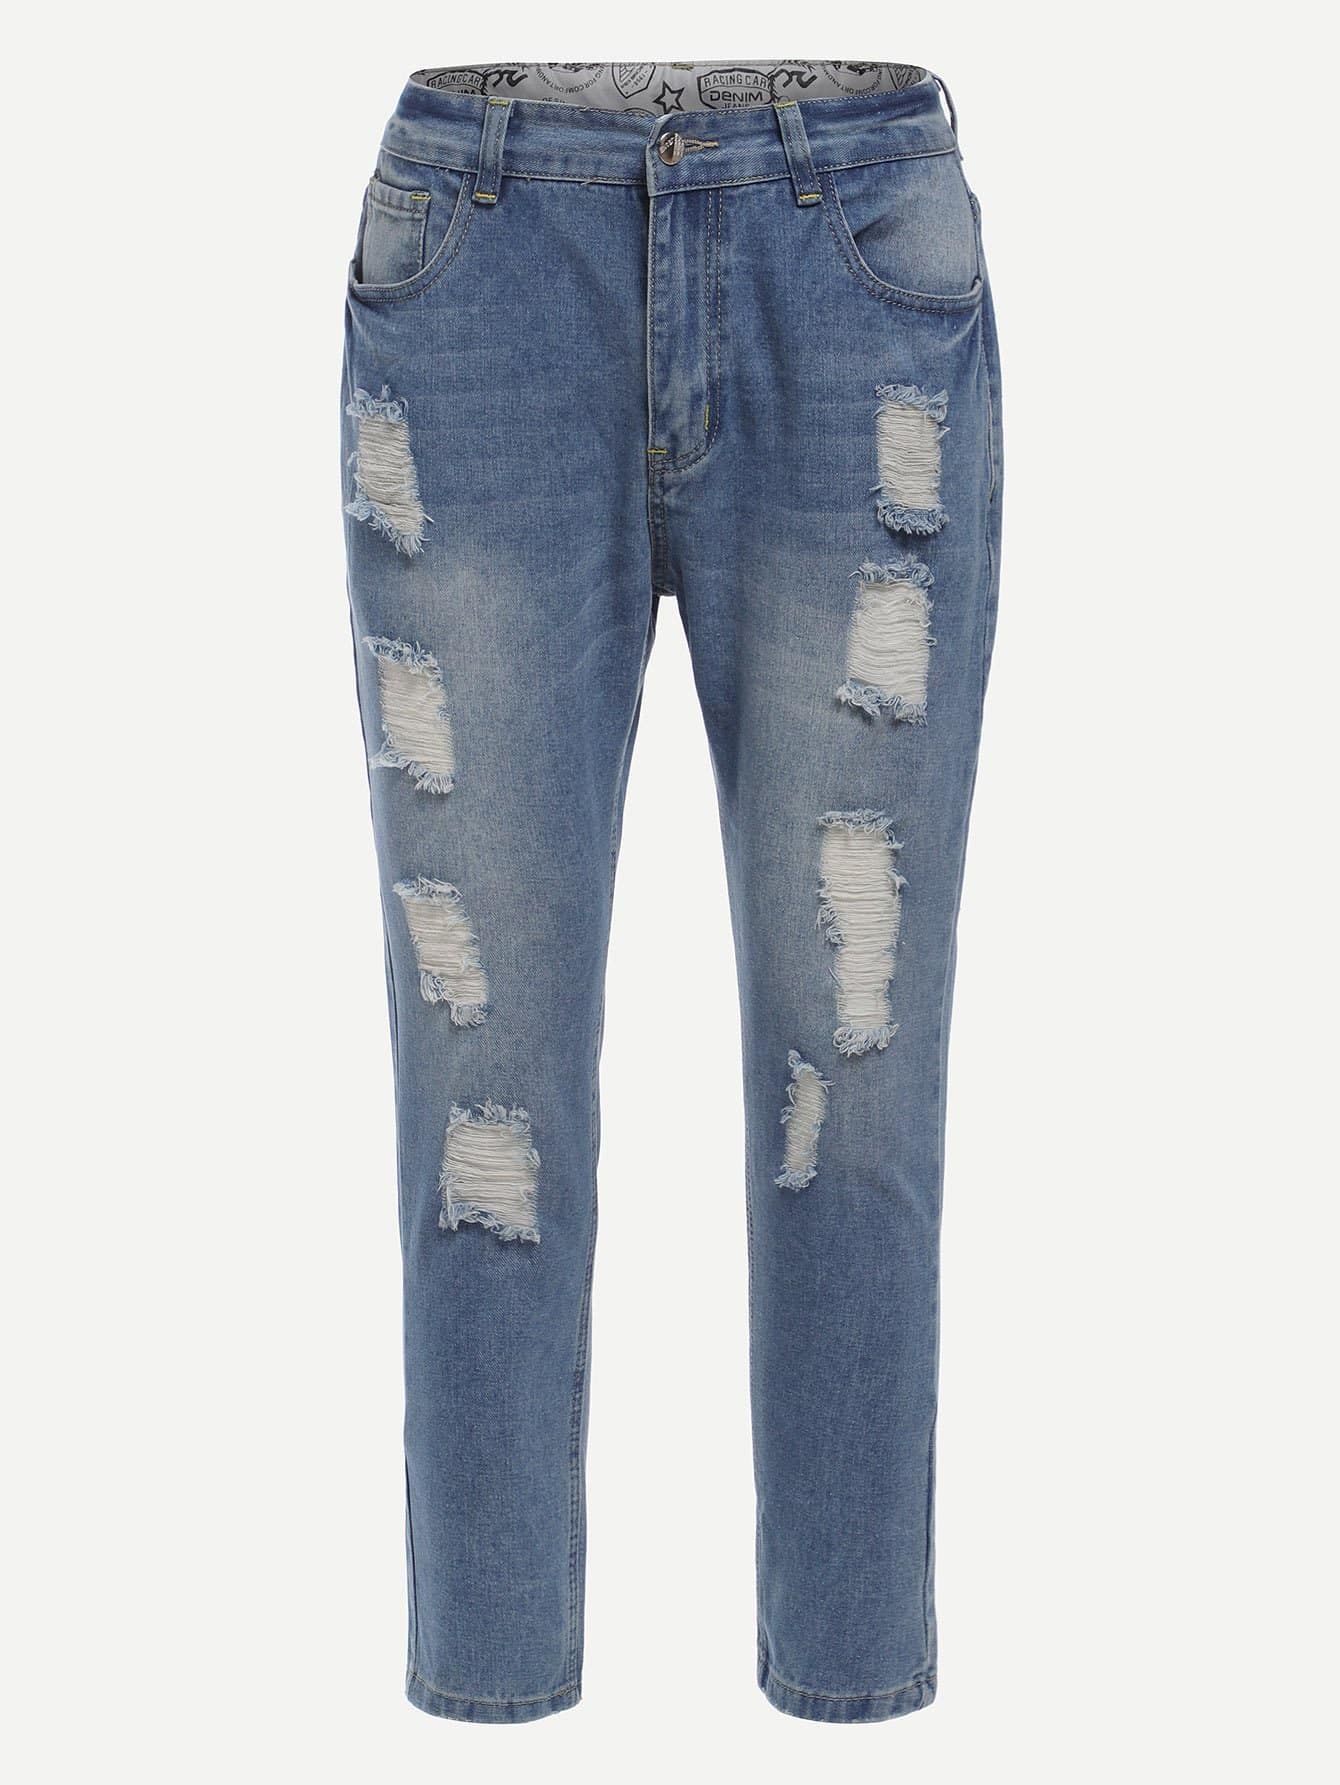 Men Ripped Skinny Jeans summer boyfriend jeans for women hole ripped white lace flowers denim pants low waist mujer vintage skinny stretch jeans female